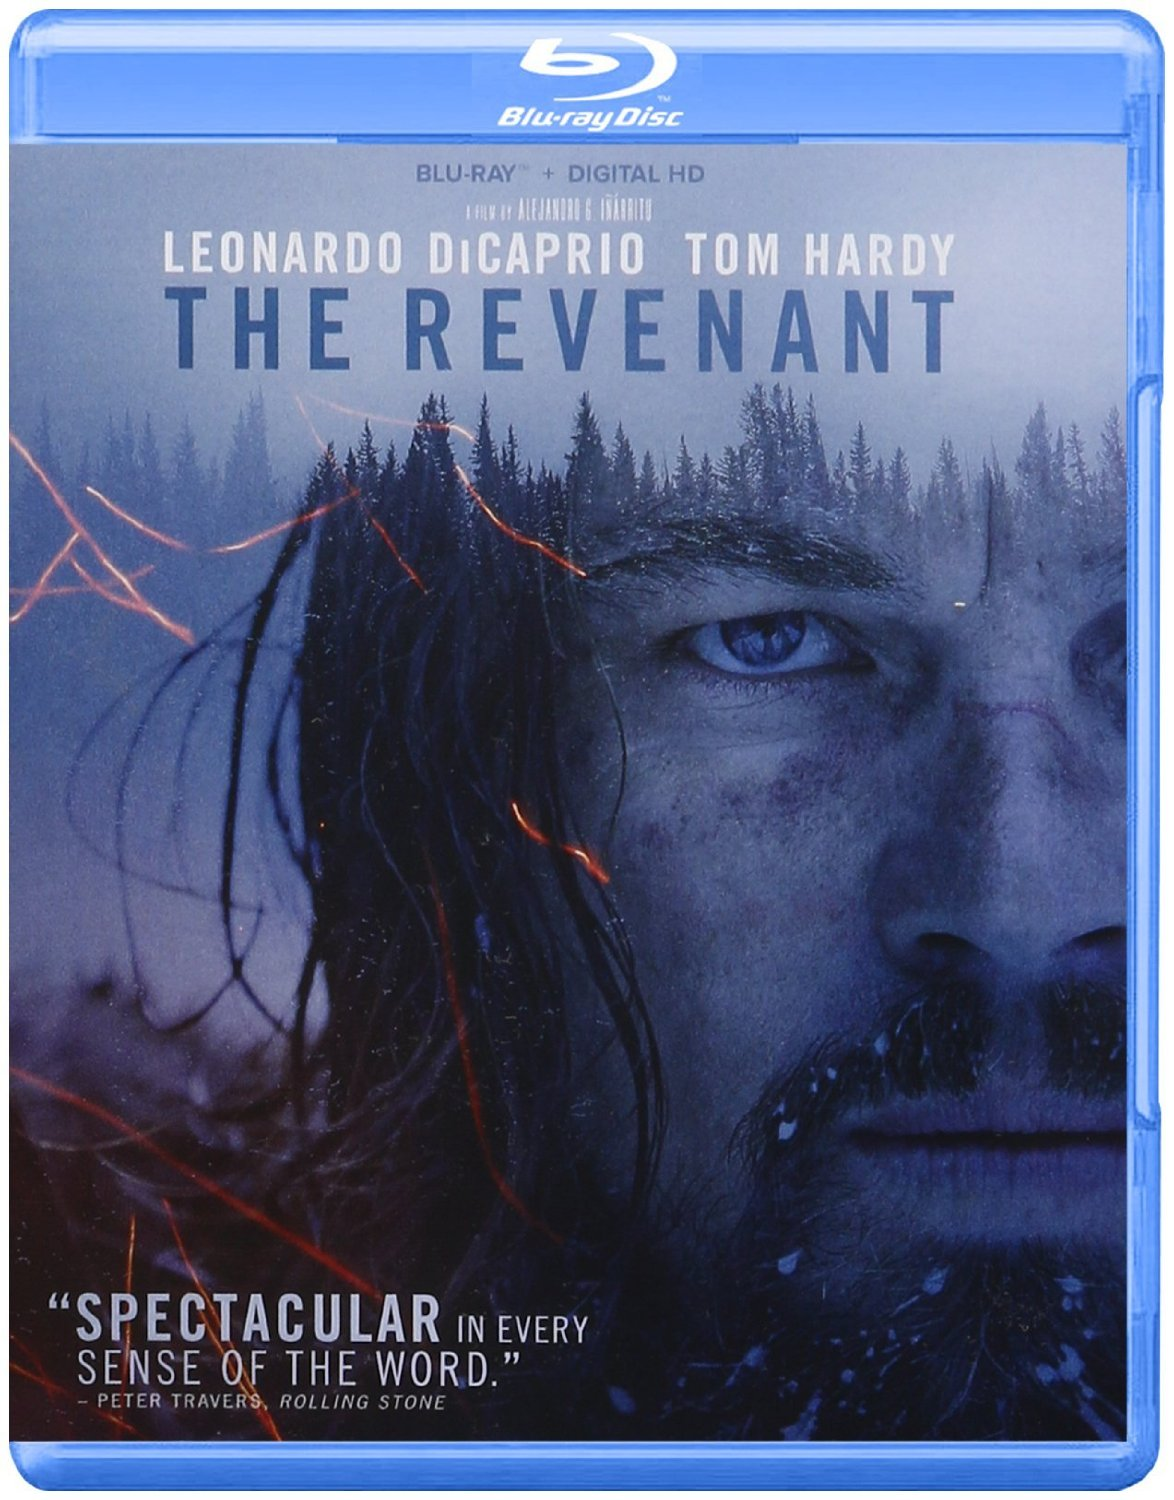 The revenant swesub download